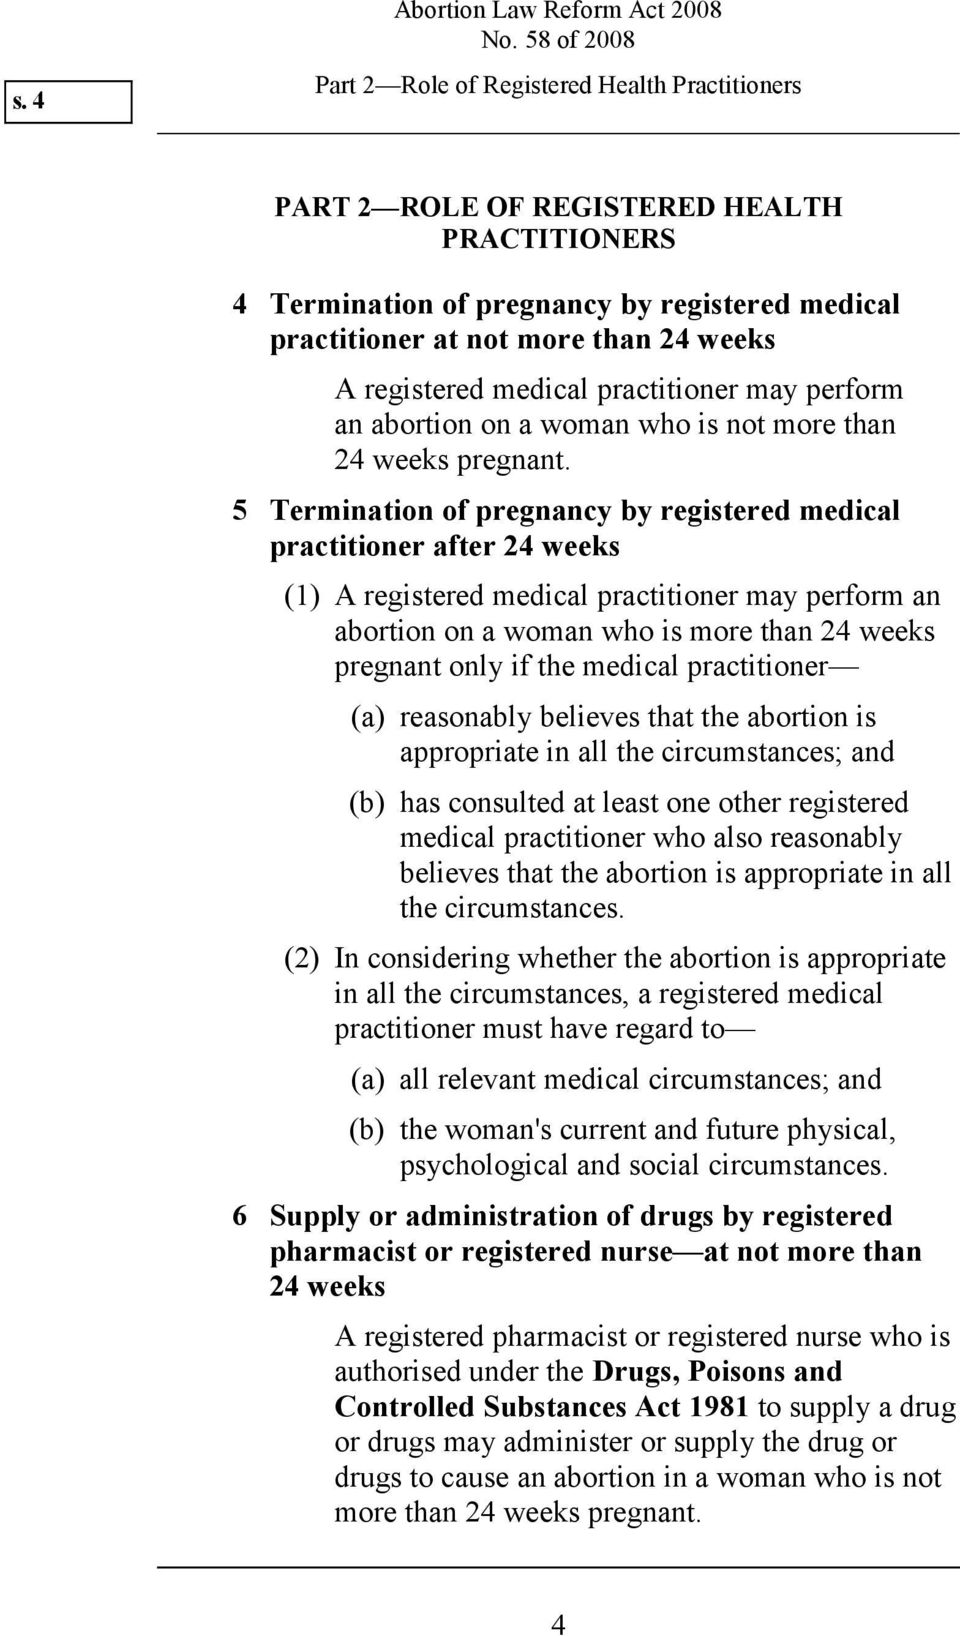 5 Termination of pregnancy by registered medical practitioner after 24 weeks (1) A registered medical practitioner may perform an abortion on a woman who is more than 24 weeks pregnant only if the